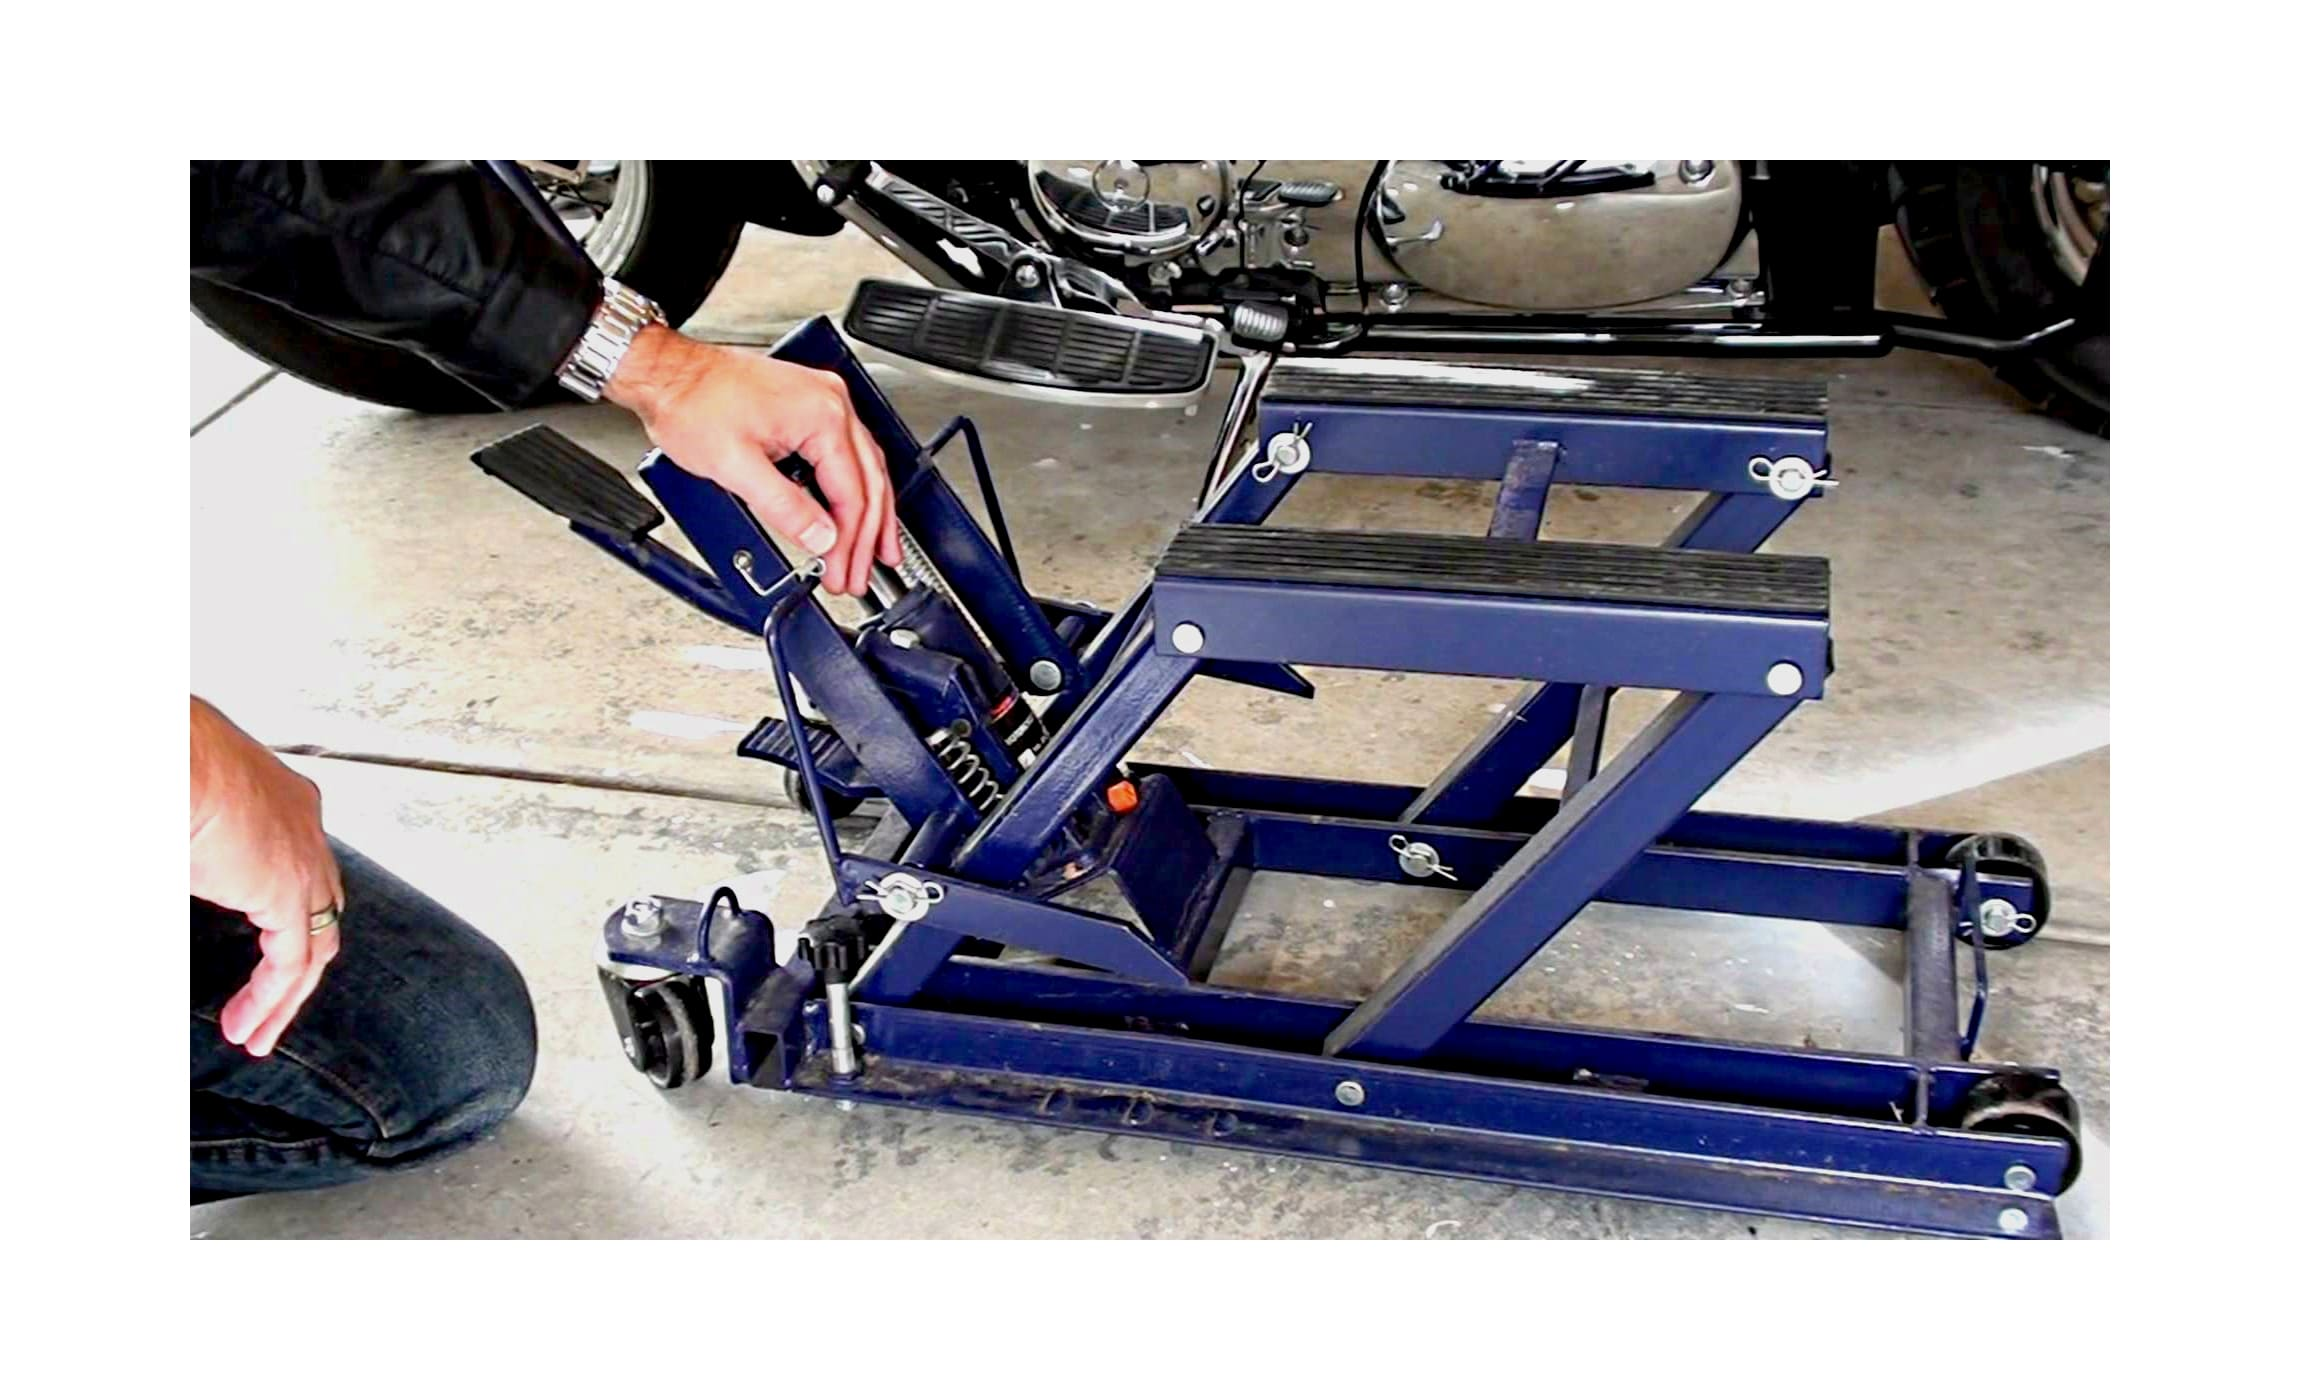 12 Best Motorcycle Jacks Lifts Stands Must Read Reviews For